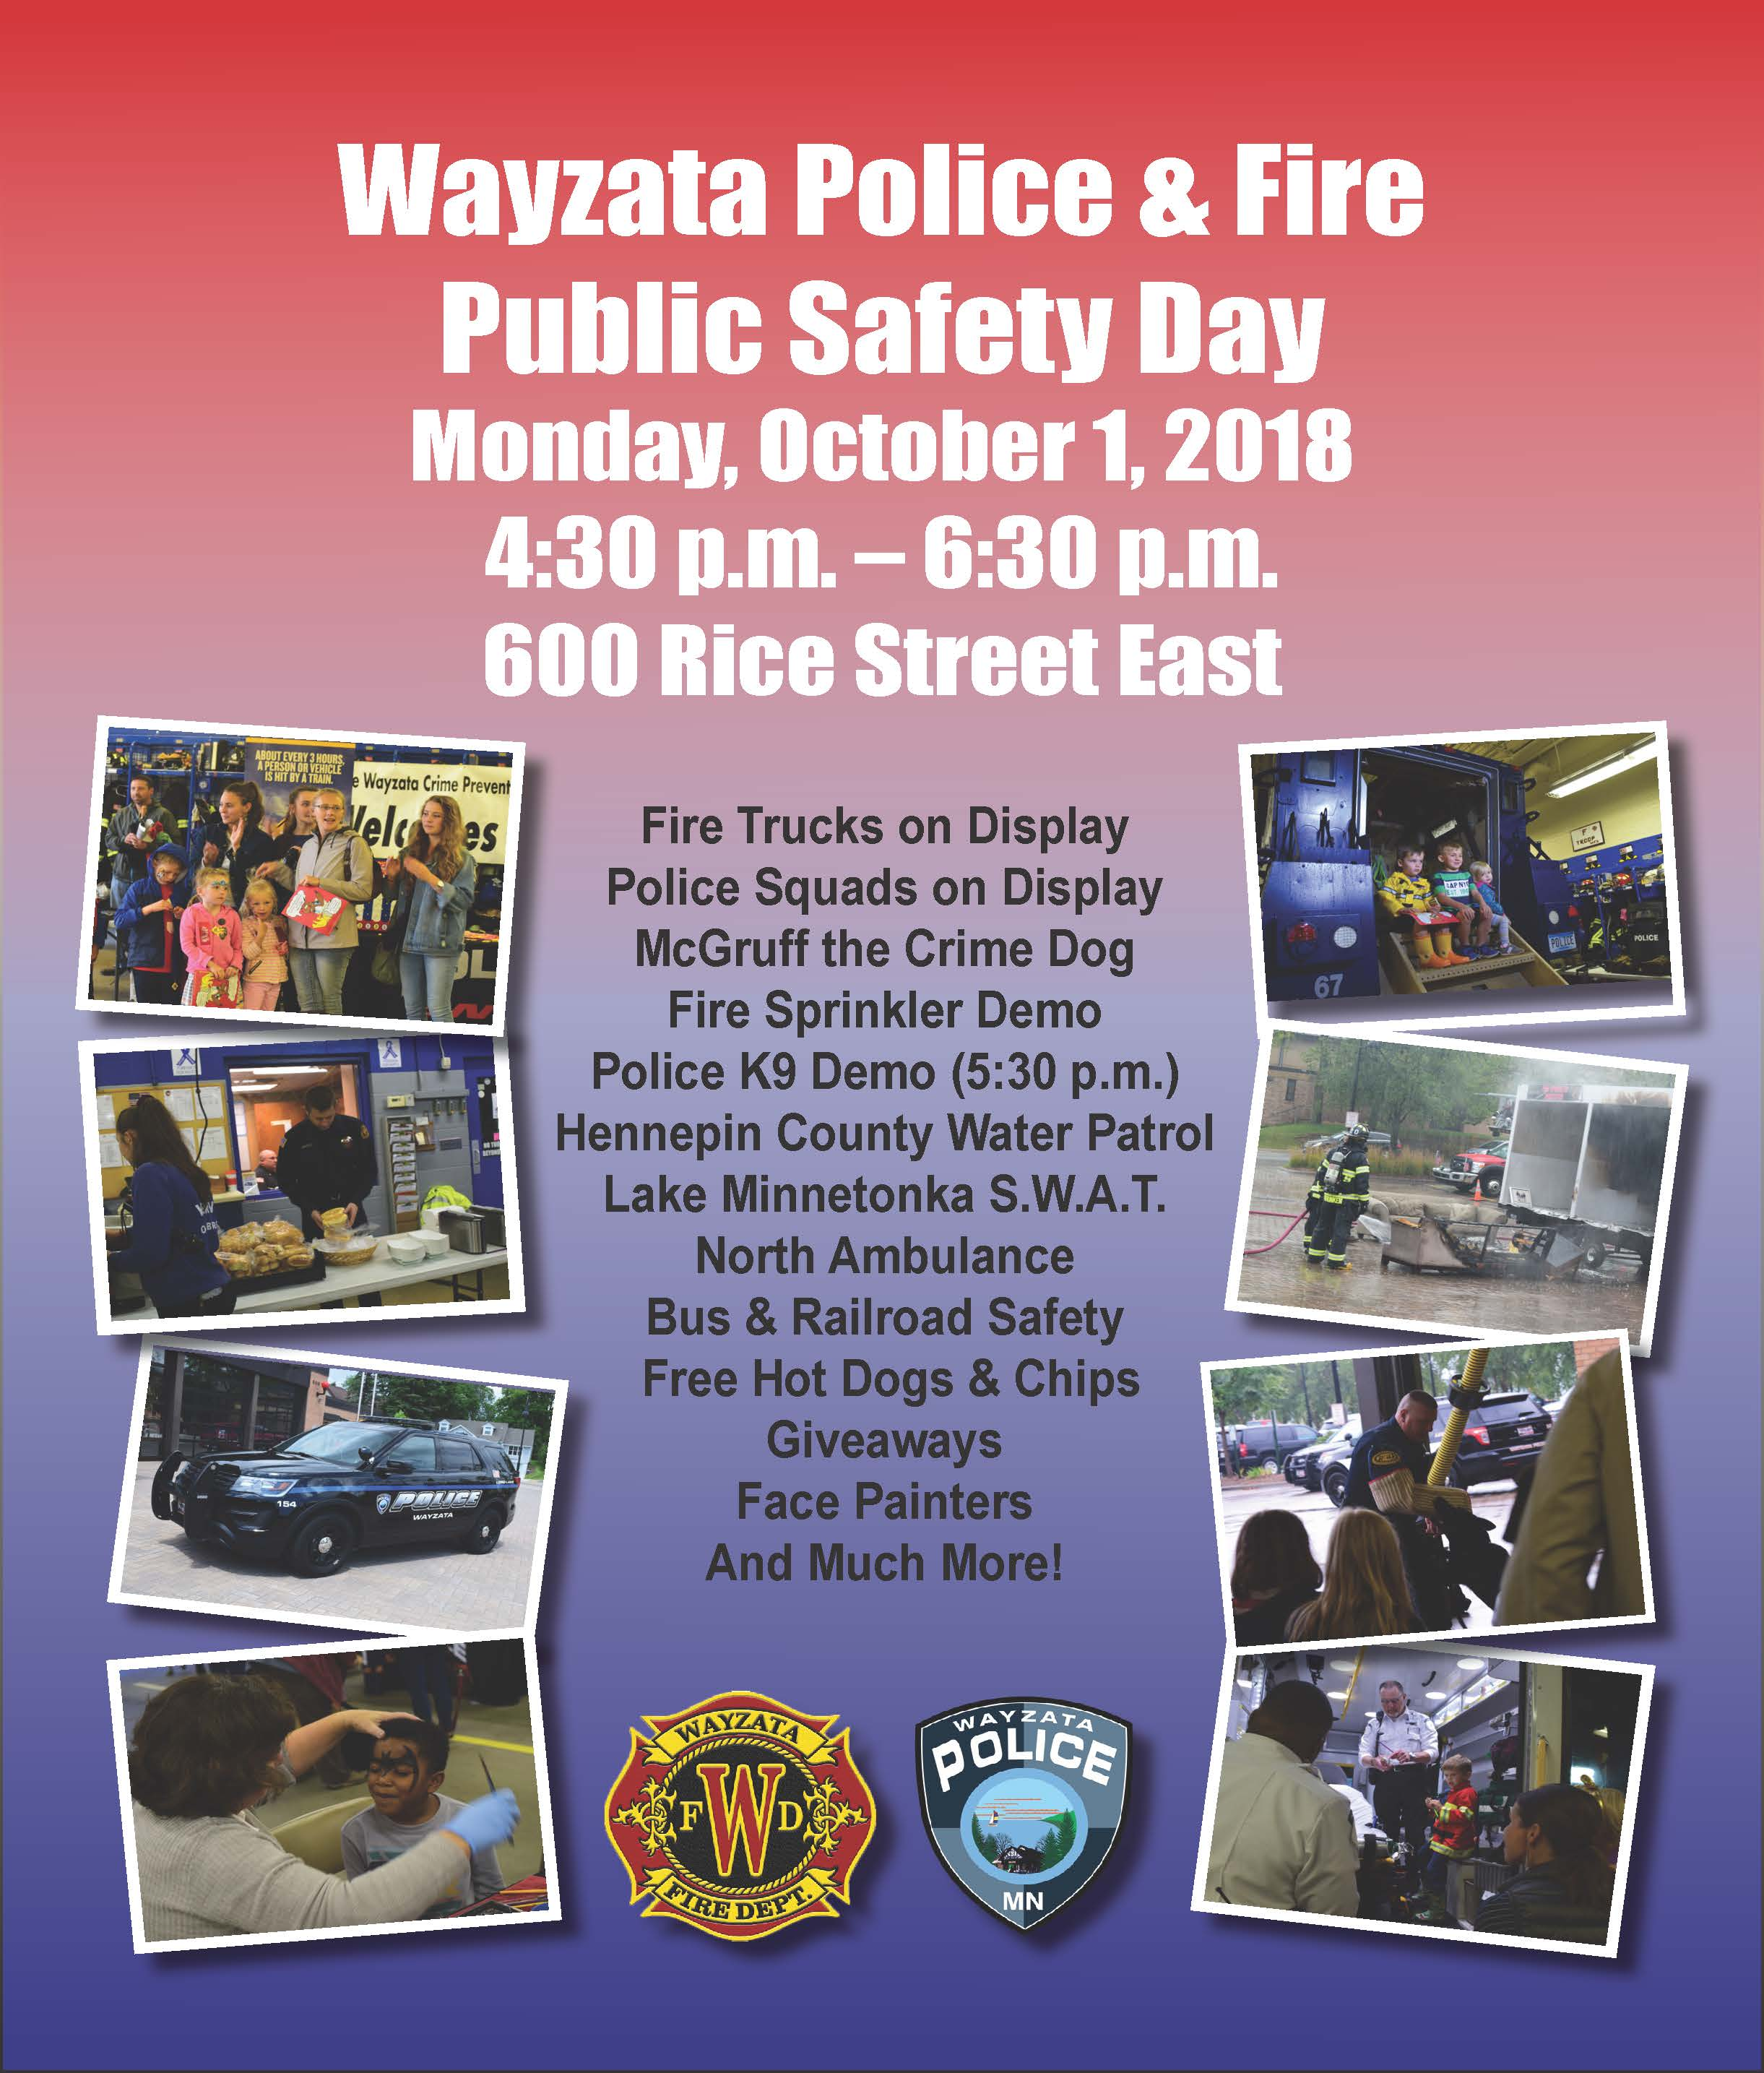 Public Safety Day 2018